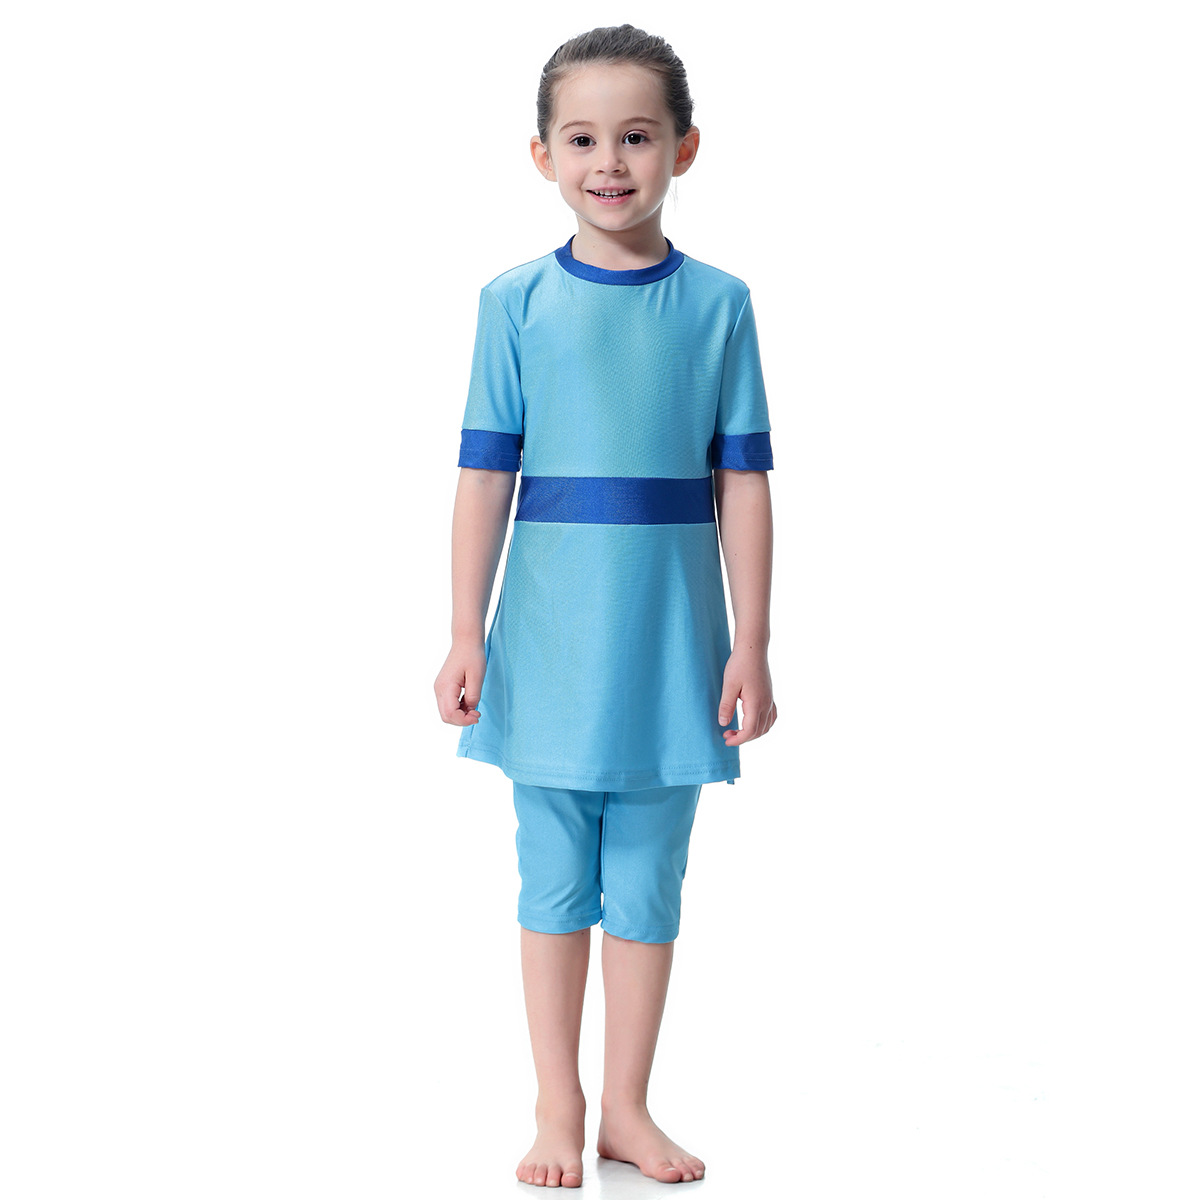 Muslim Hui Girls Swimsuit Conservative Two-Piece Swimming Suit H2004, Hot Selling